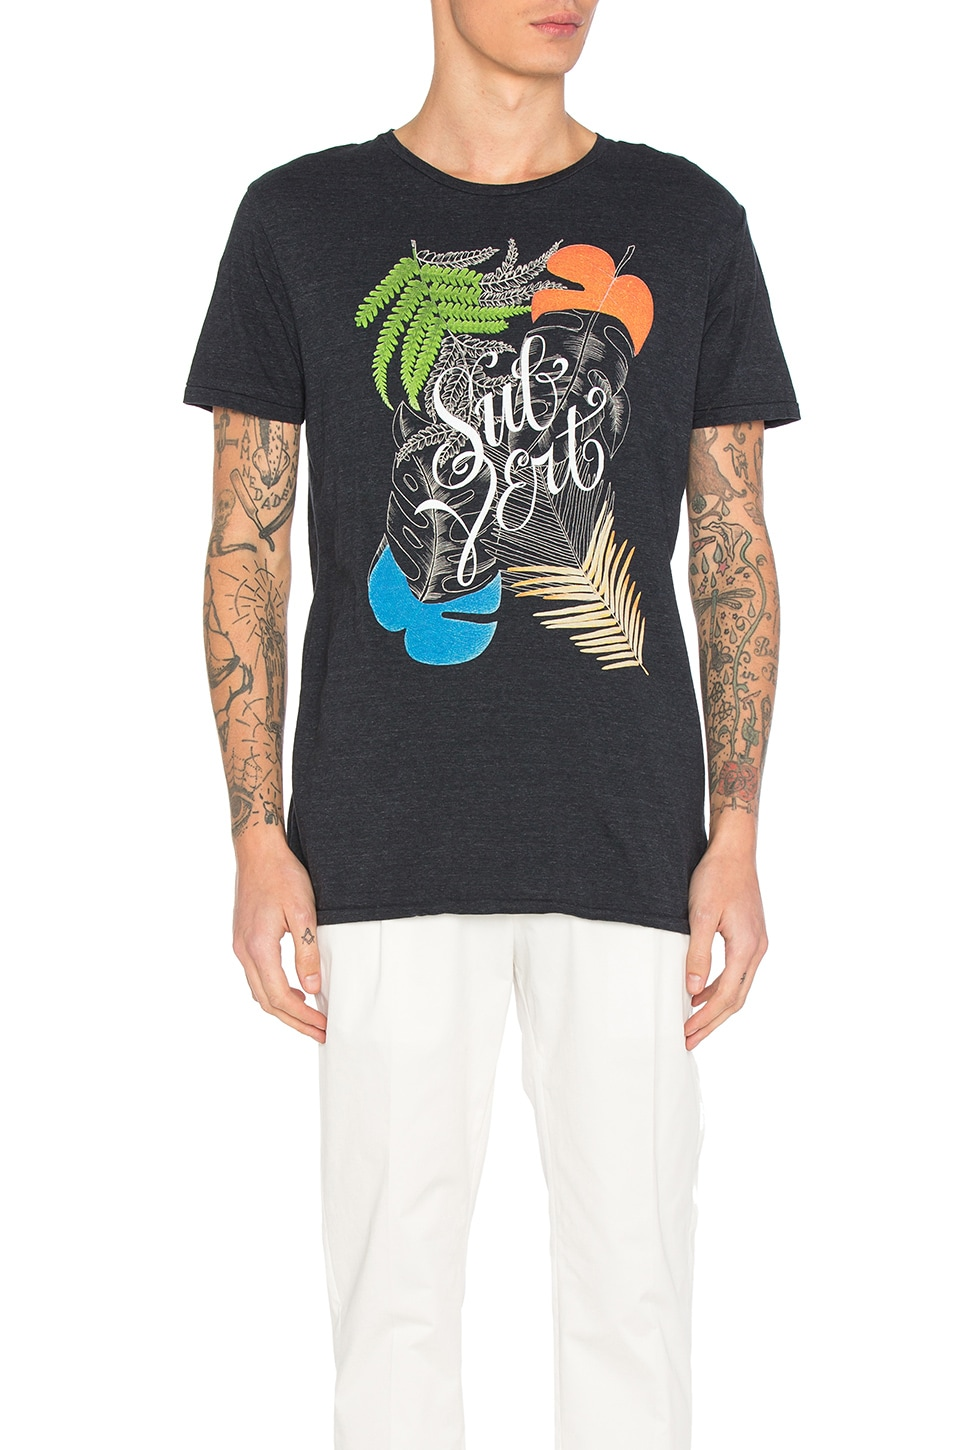 Chest Artwork Tee by Scotch & Soda